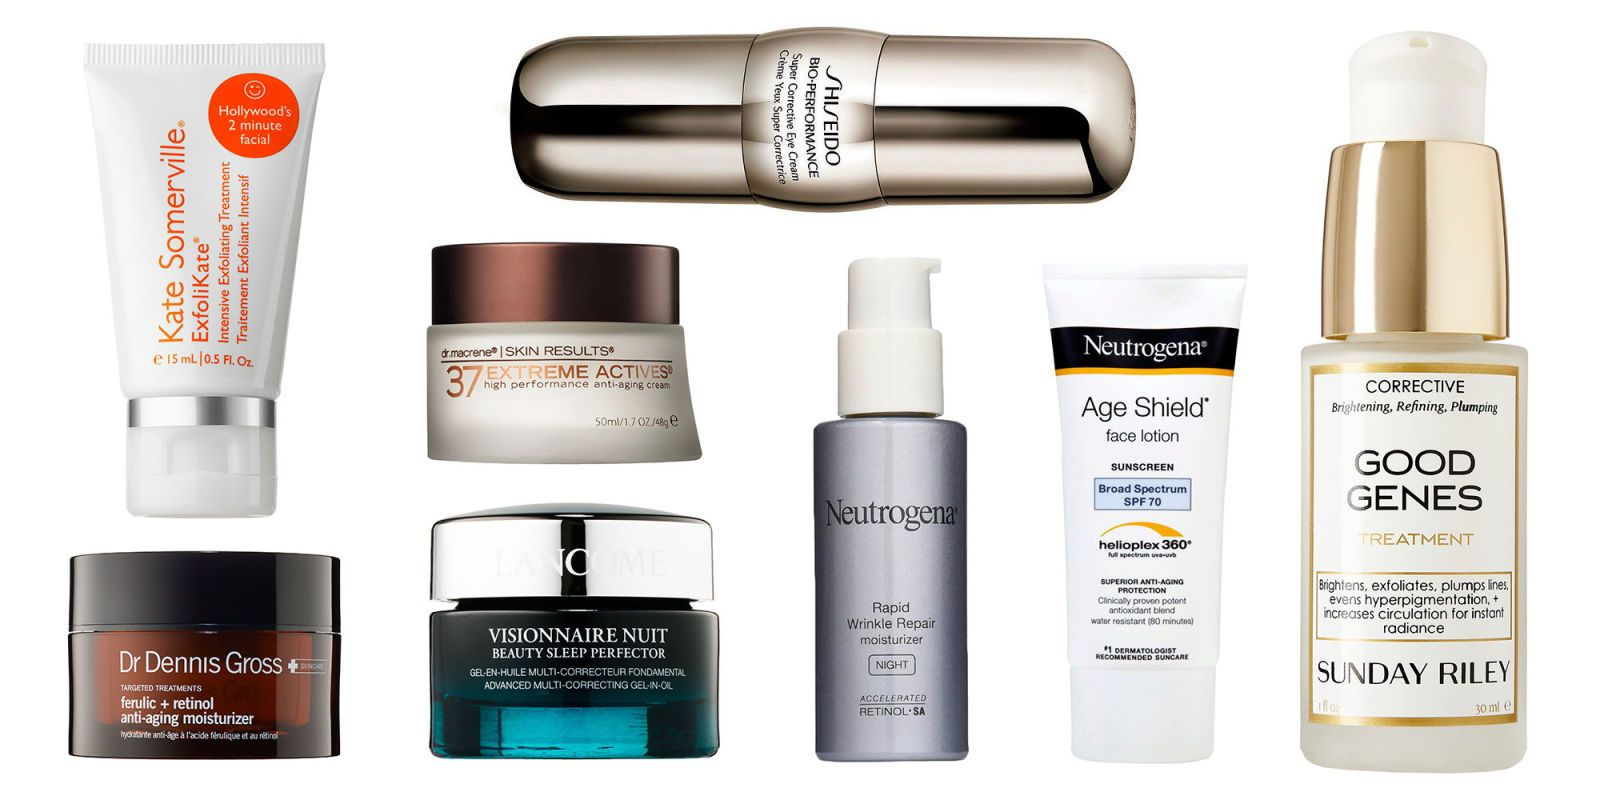 9429fcdc469 The 6 Best Anti-Wrinkle Creams According to ELLE.com Editors